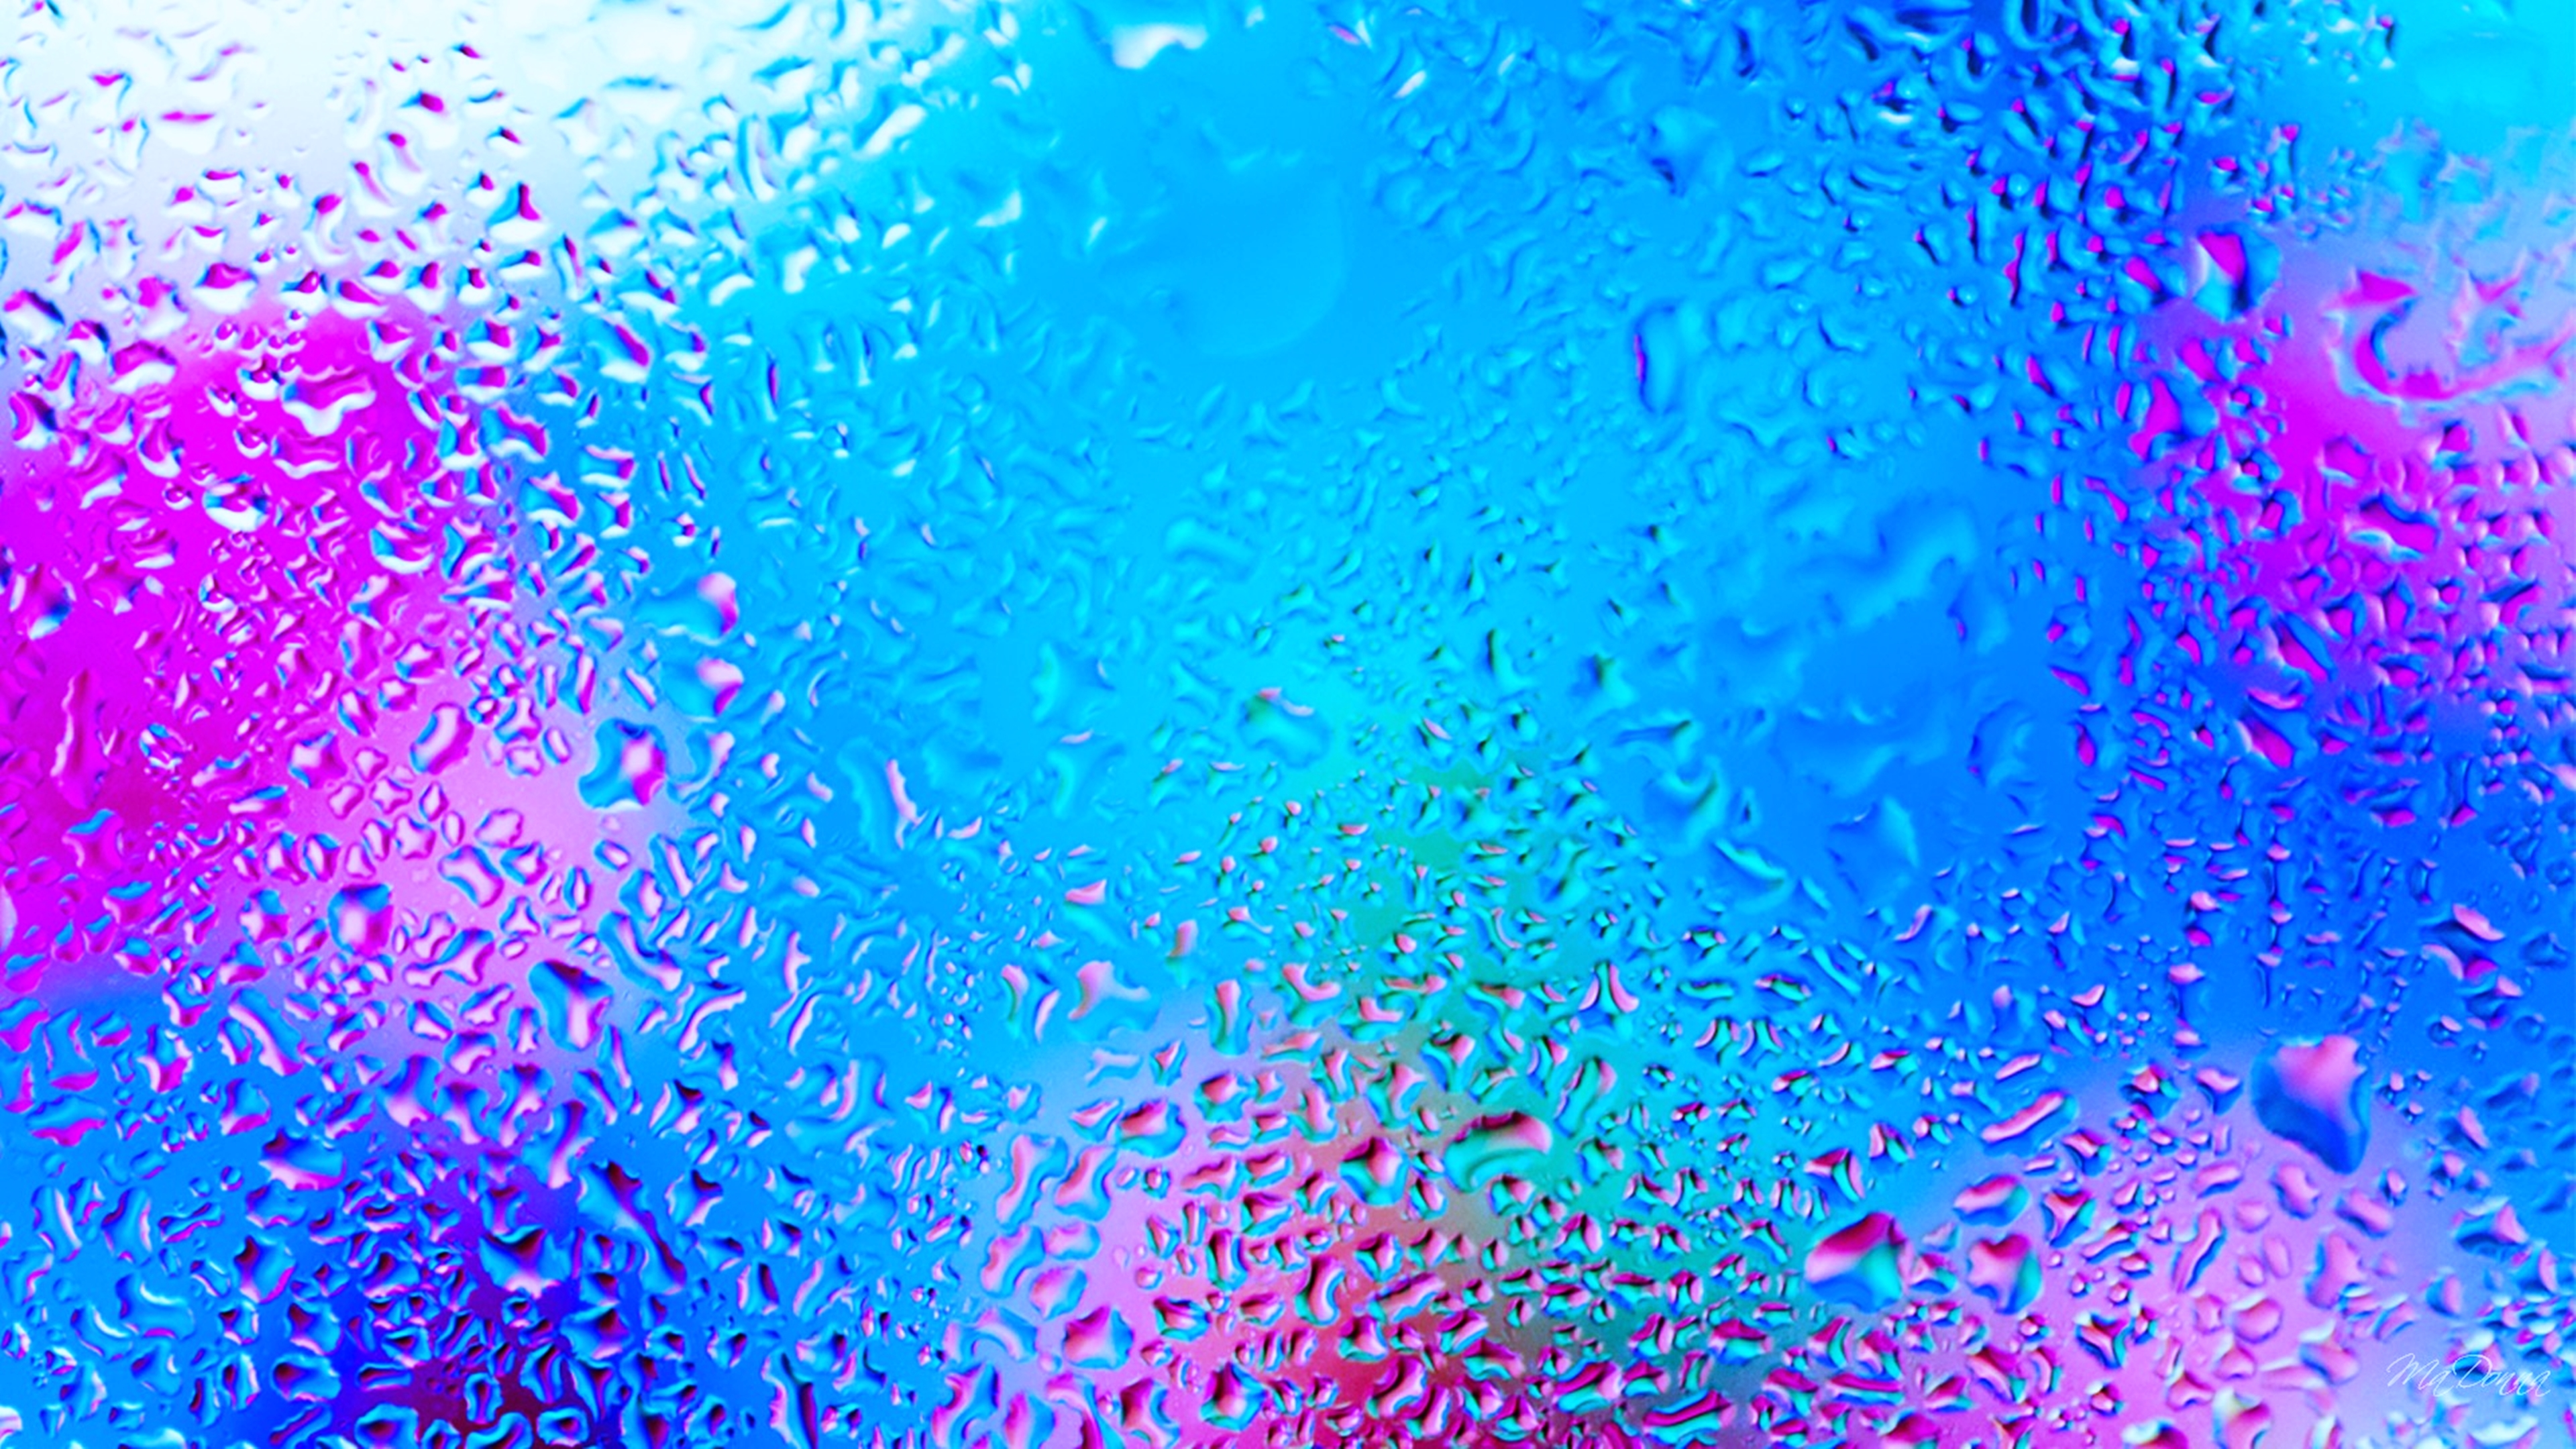 Water Drops Image